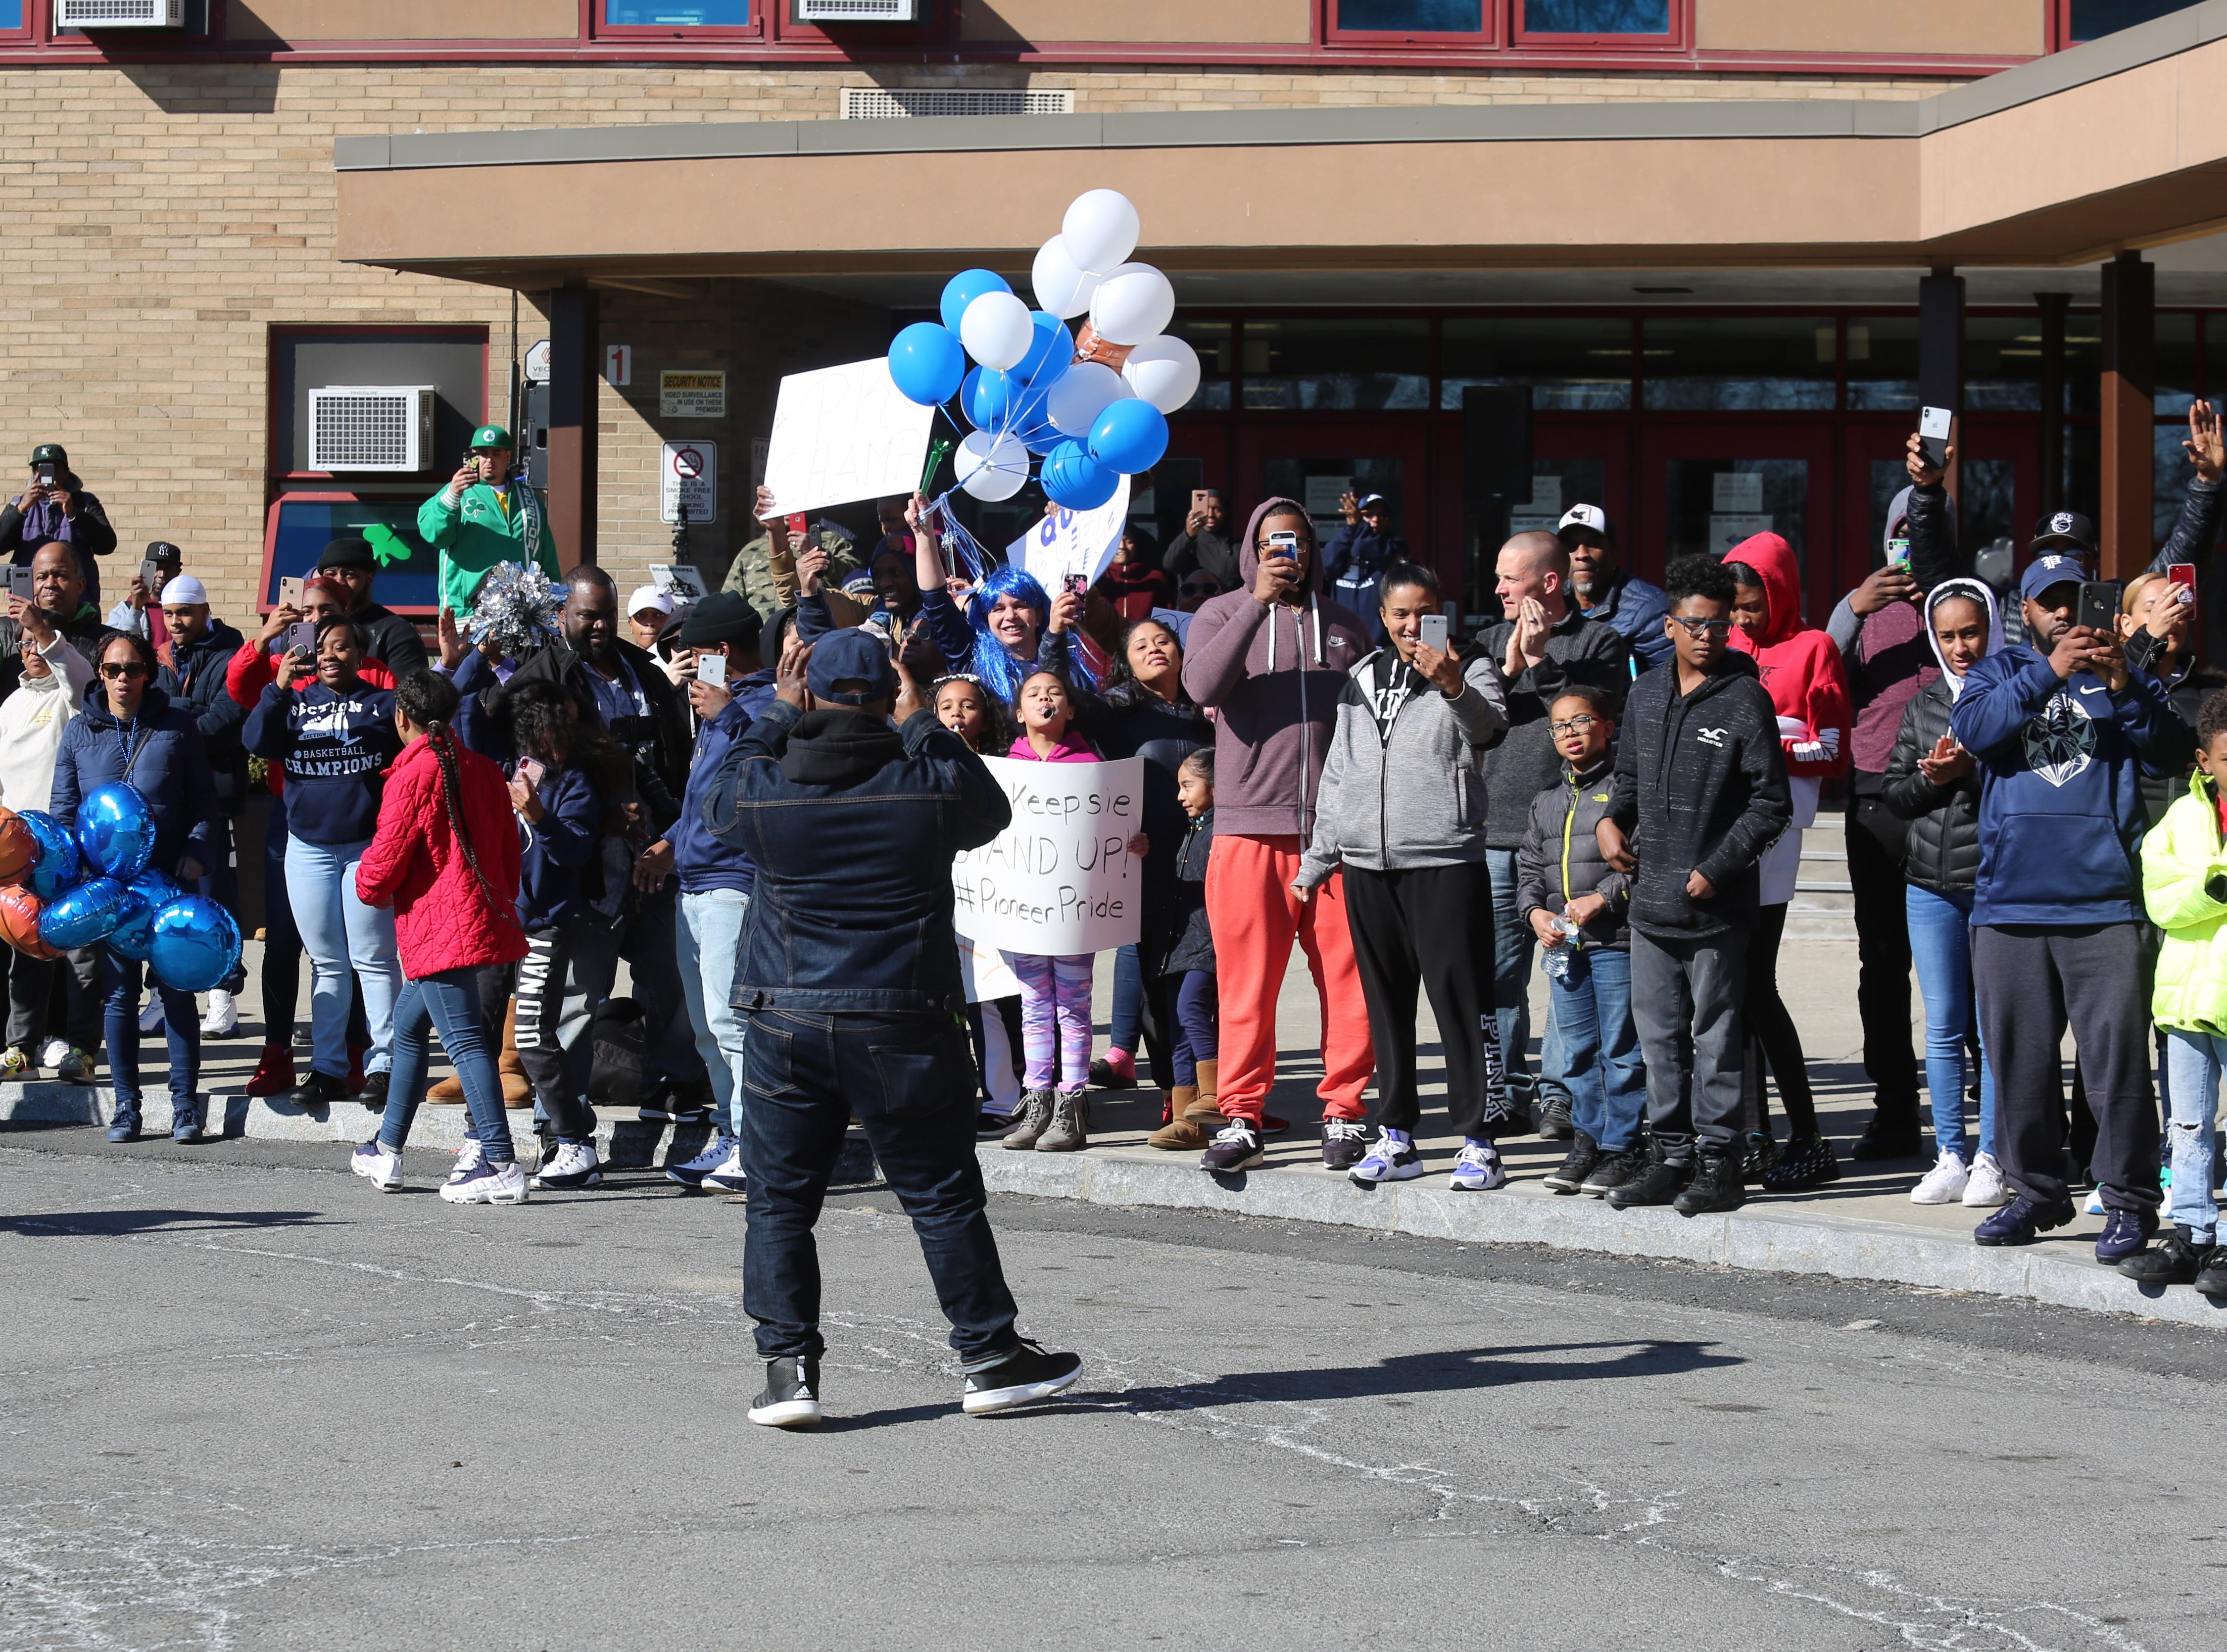 Poughkeepsie residents gathered in front of the high school on Sunday to greet the boys basketball team, returning from Binghamton with its first state championship since 1995.